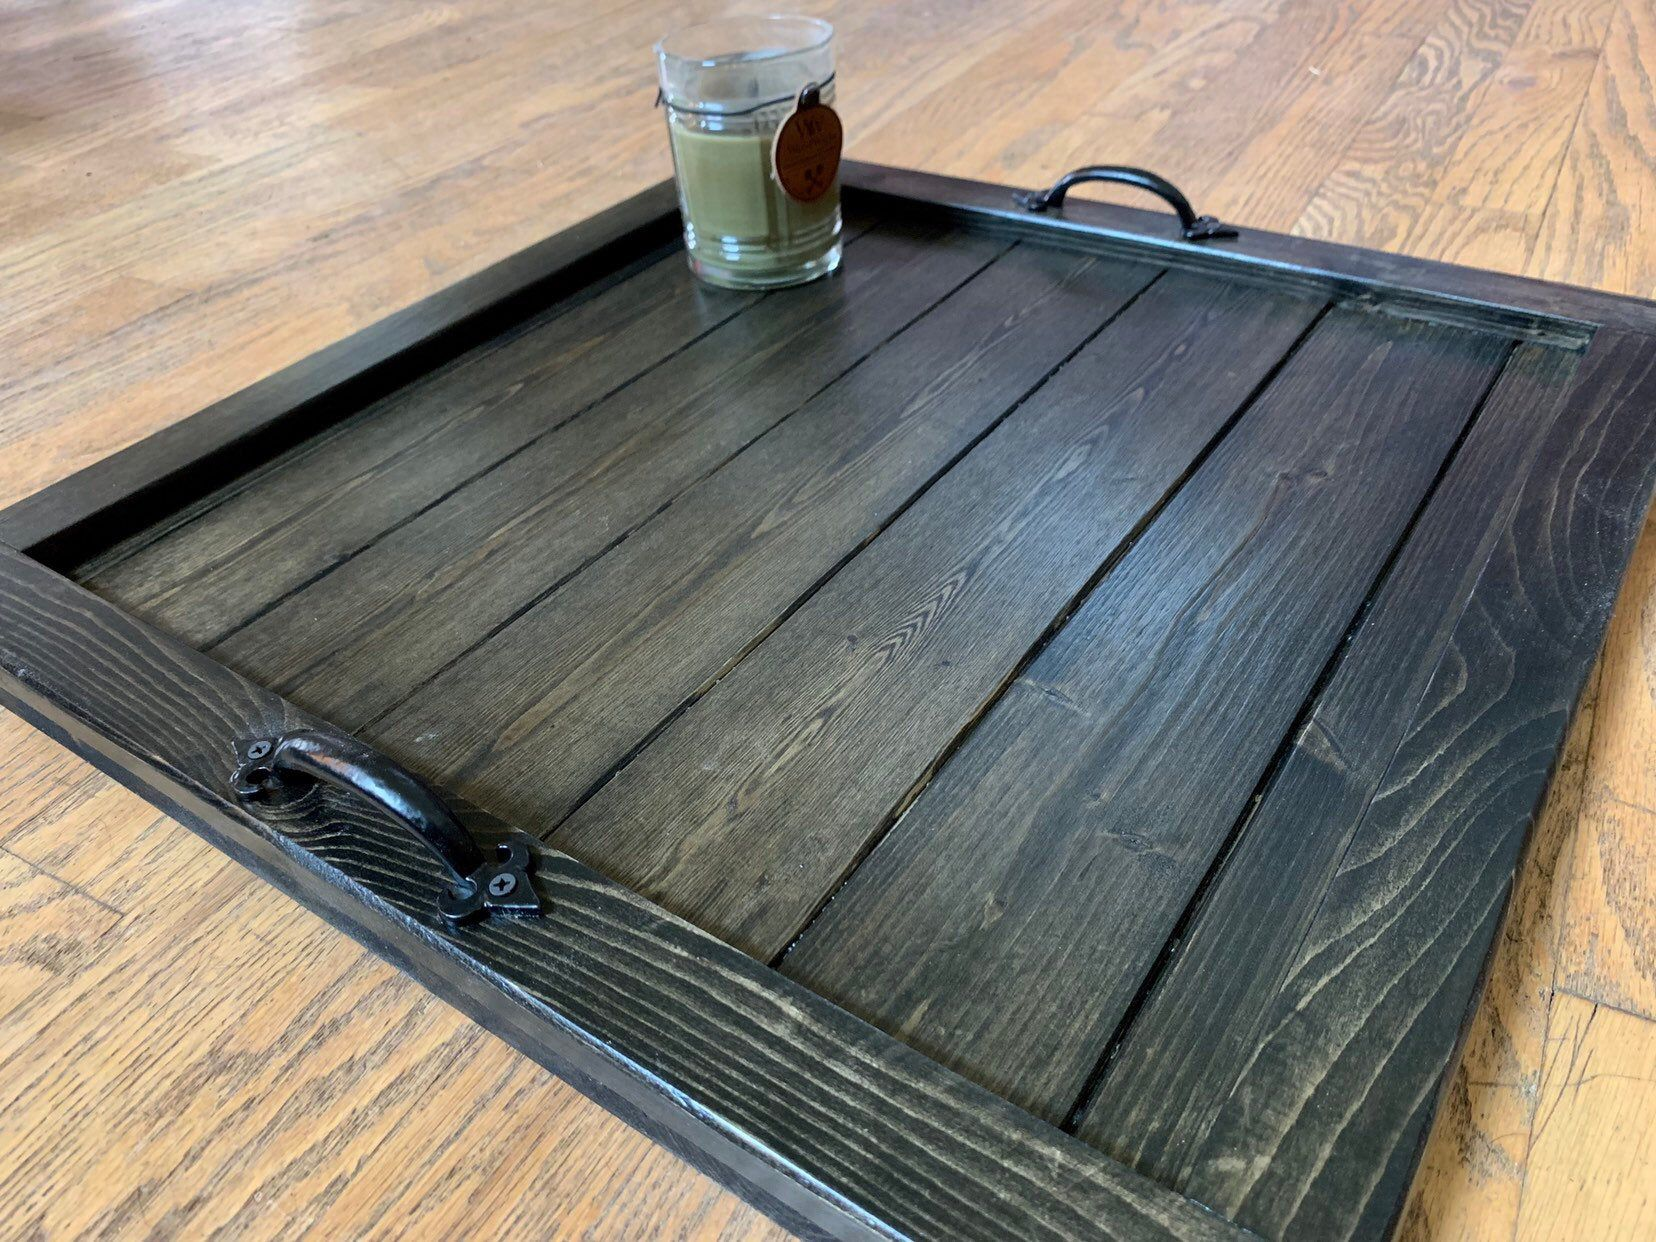 Ottoman Tray Coffee Table Tray Large Wooden Rustic Square Etsy Ottoman Tray Oversized Ottoman Coffee Tables Coffee Table Tray [ 1242 x 1656 Pixel ]